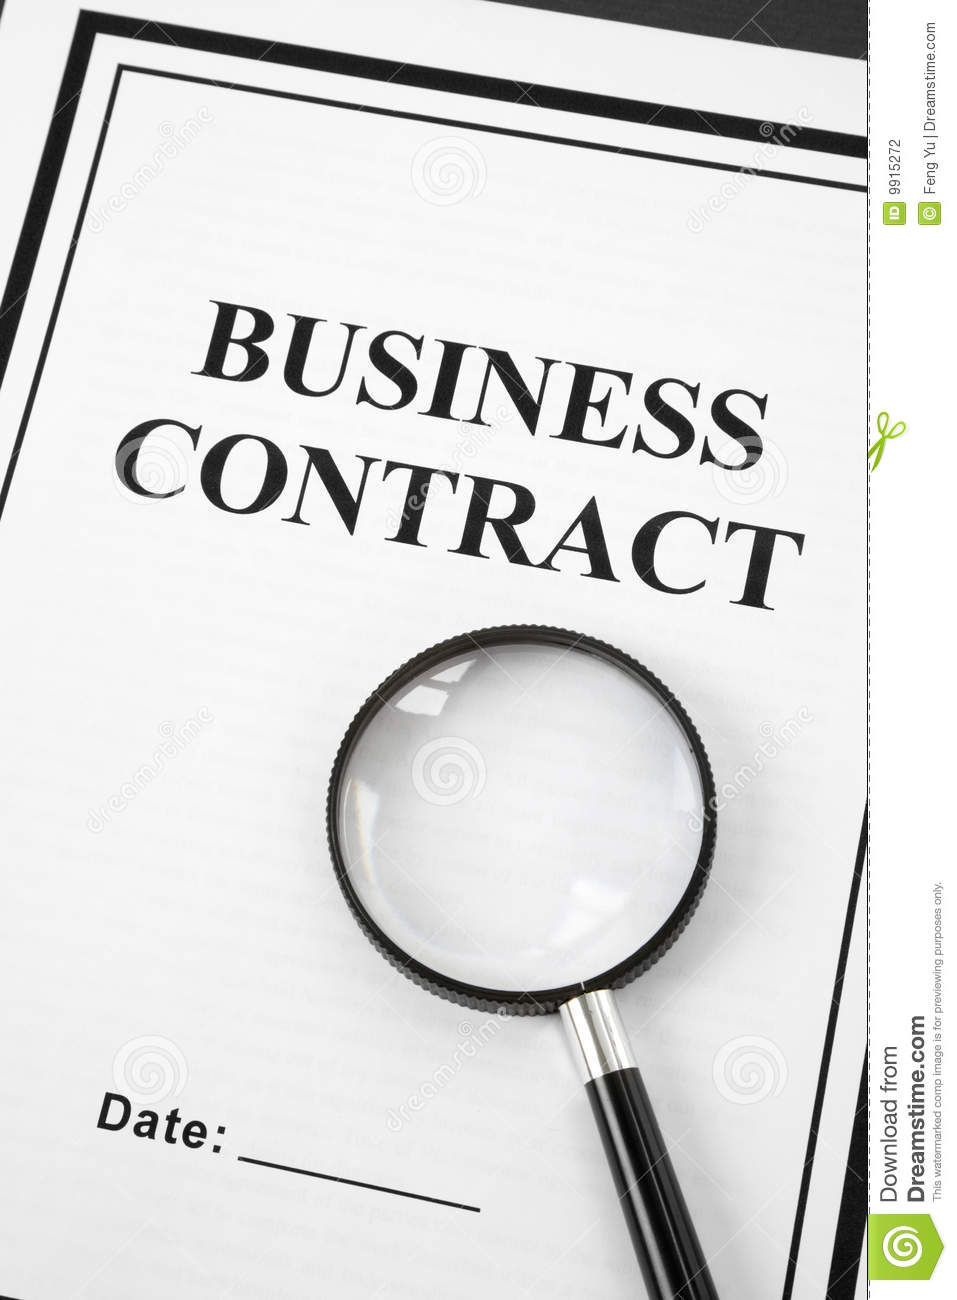 Business Contract Photography Image 9915272 – Business Contract